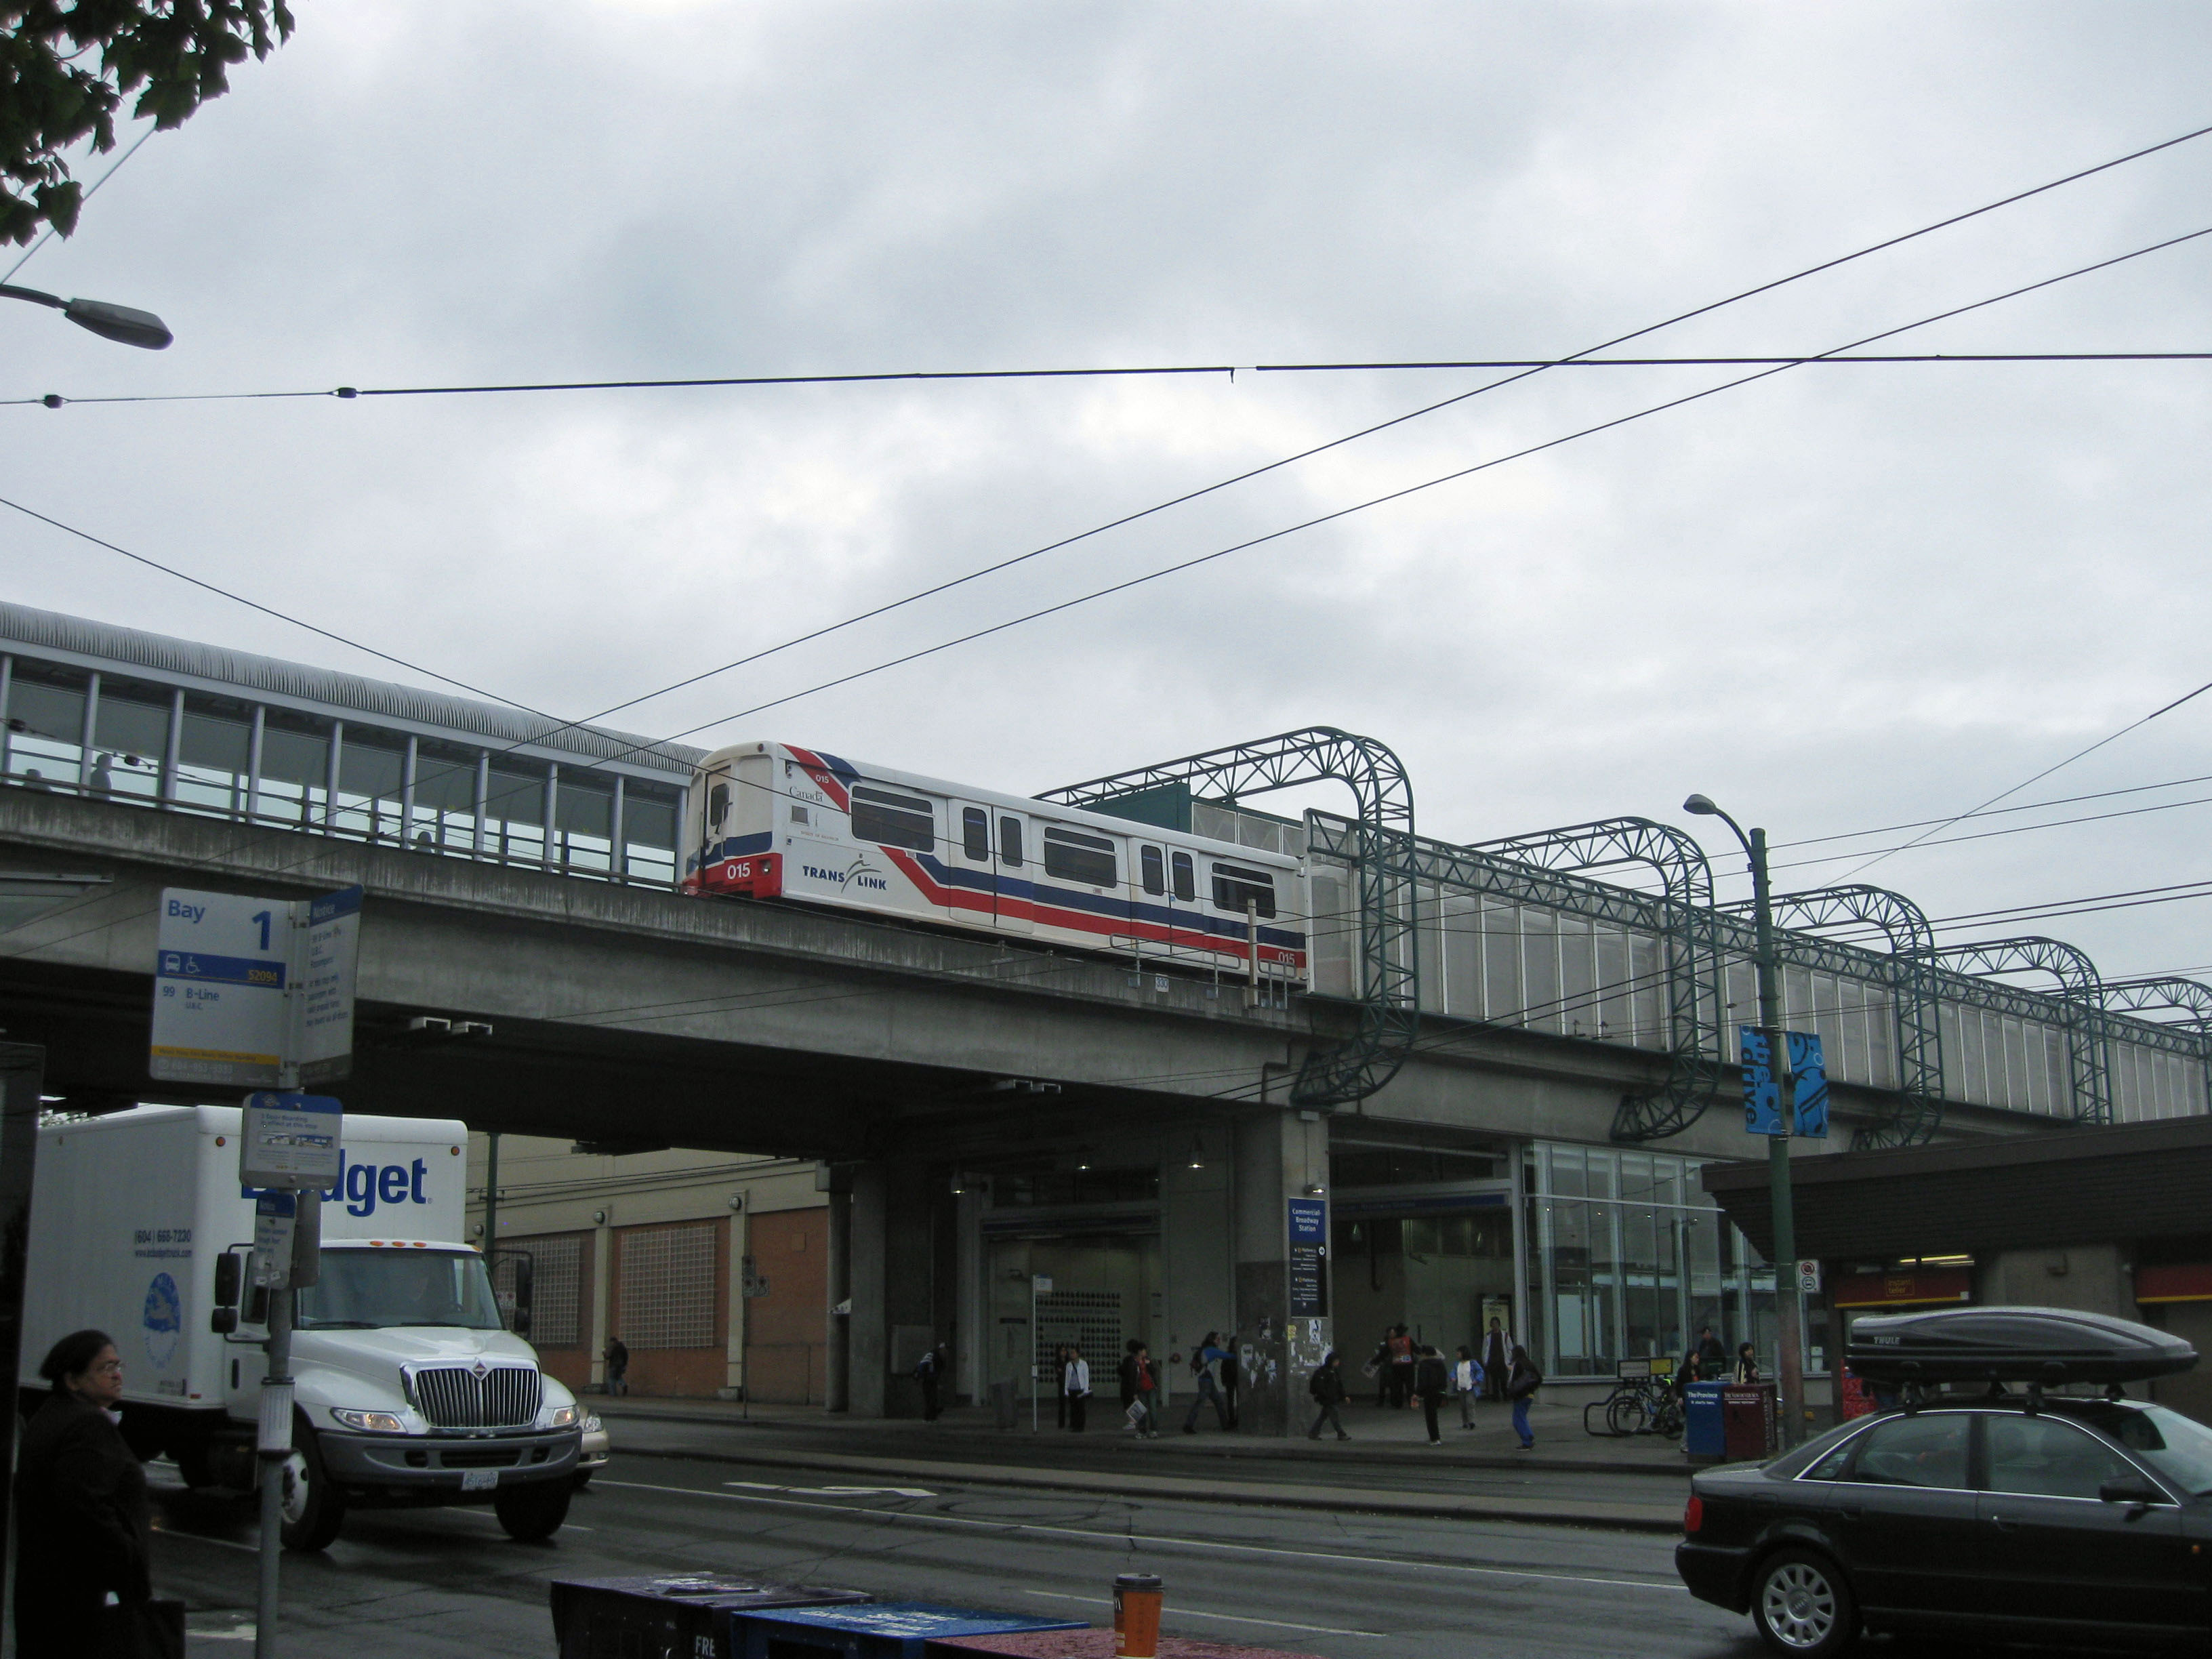 Broadway Station, Expo Line, Vancouver SkyTrain, 2010